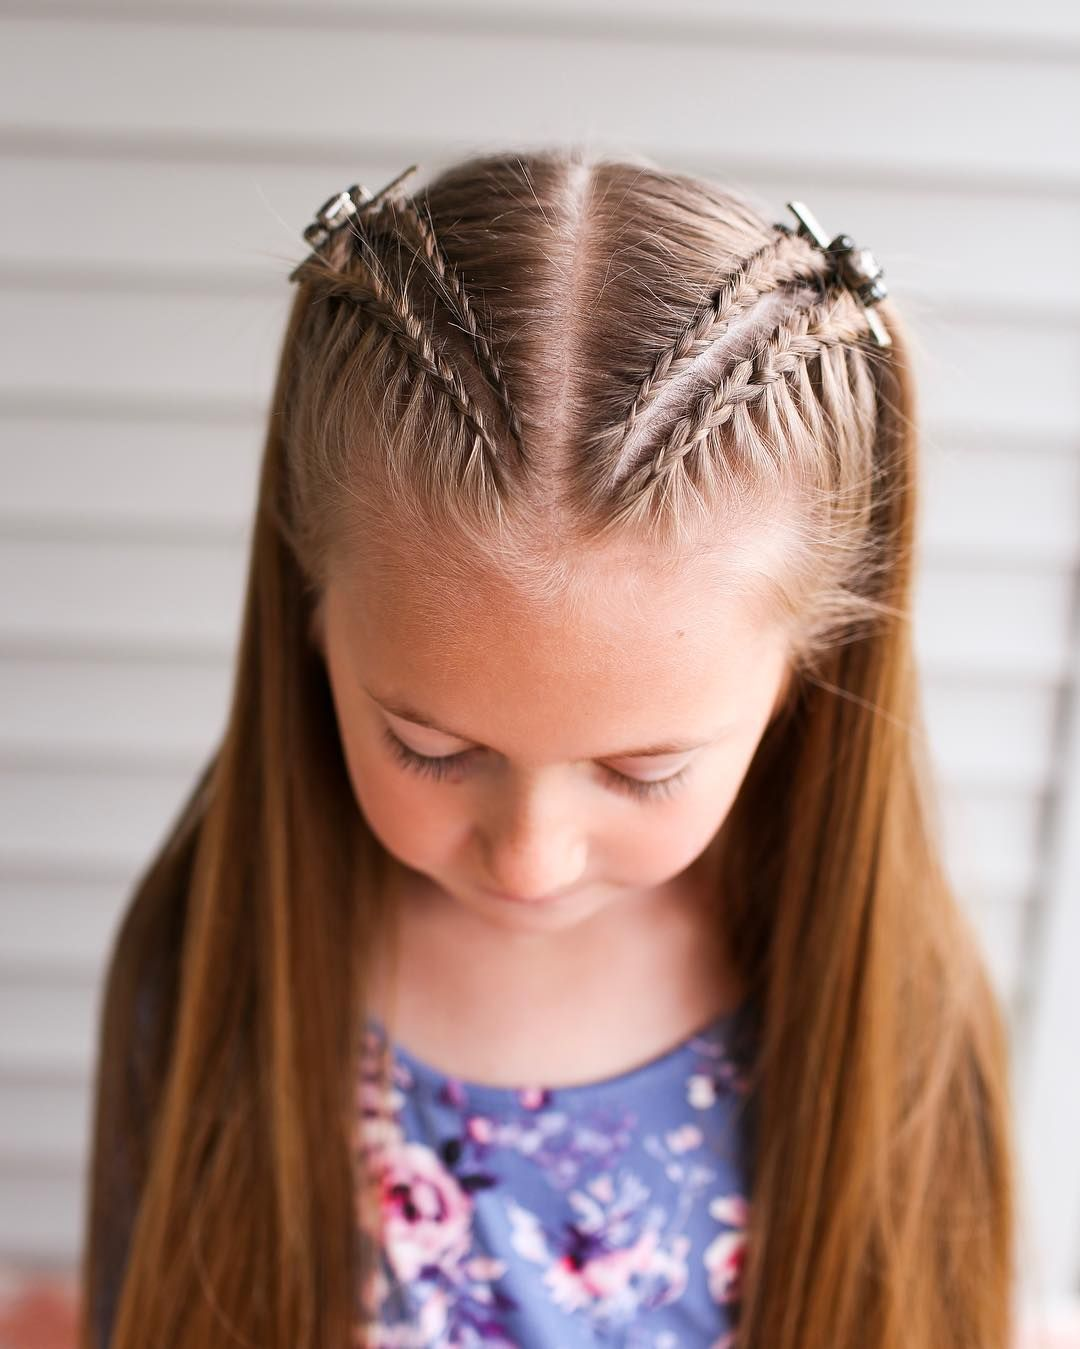 Hair Kids Fashion On Instagram Fun And Easy Hairstyle For Today Charlie Told Me This Morning Kids Hairstyles Kids Hairstyles Girls Little Girl Hairstyles